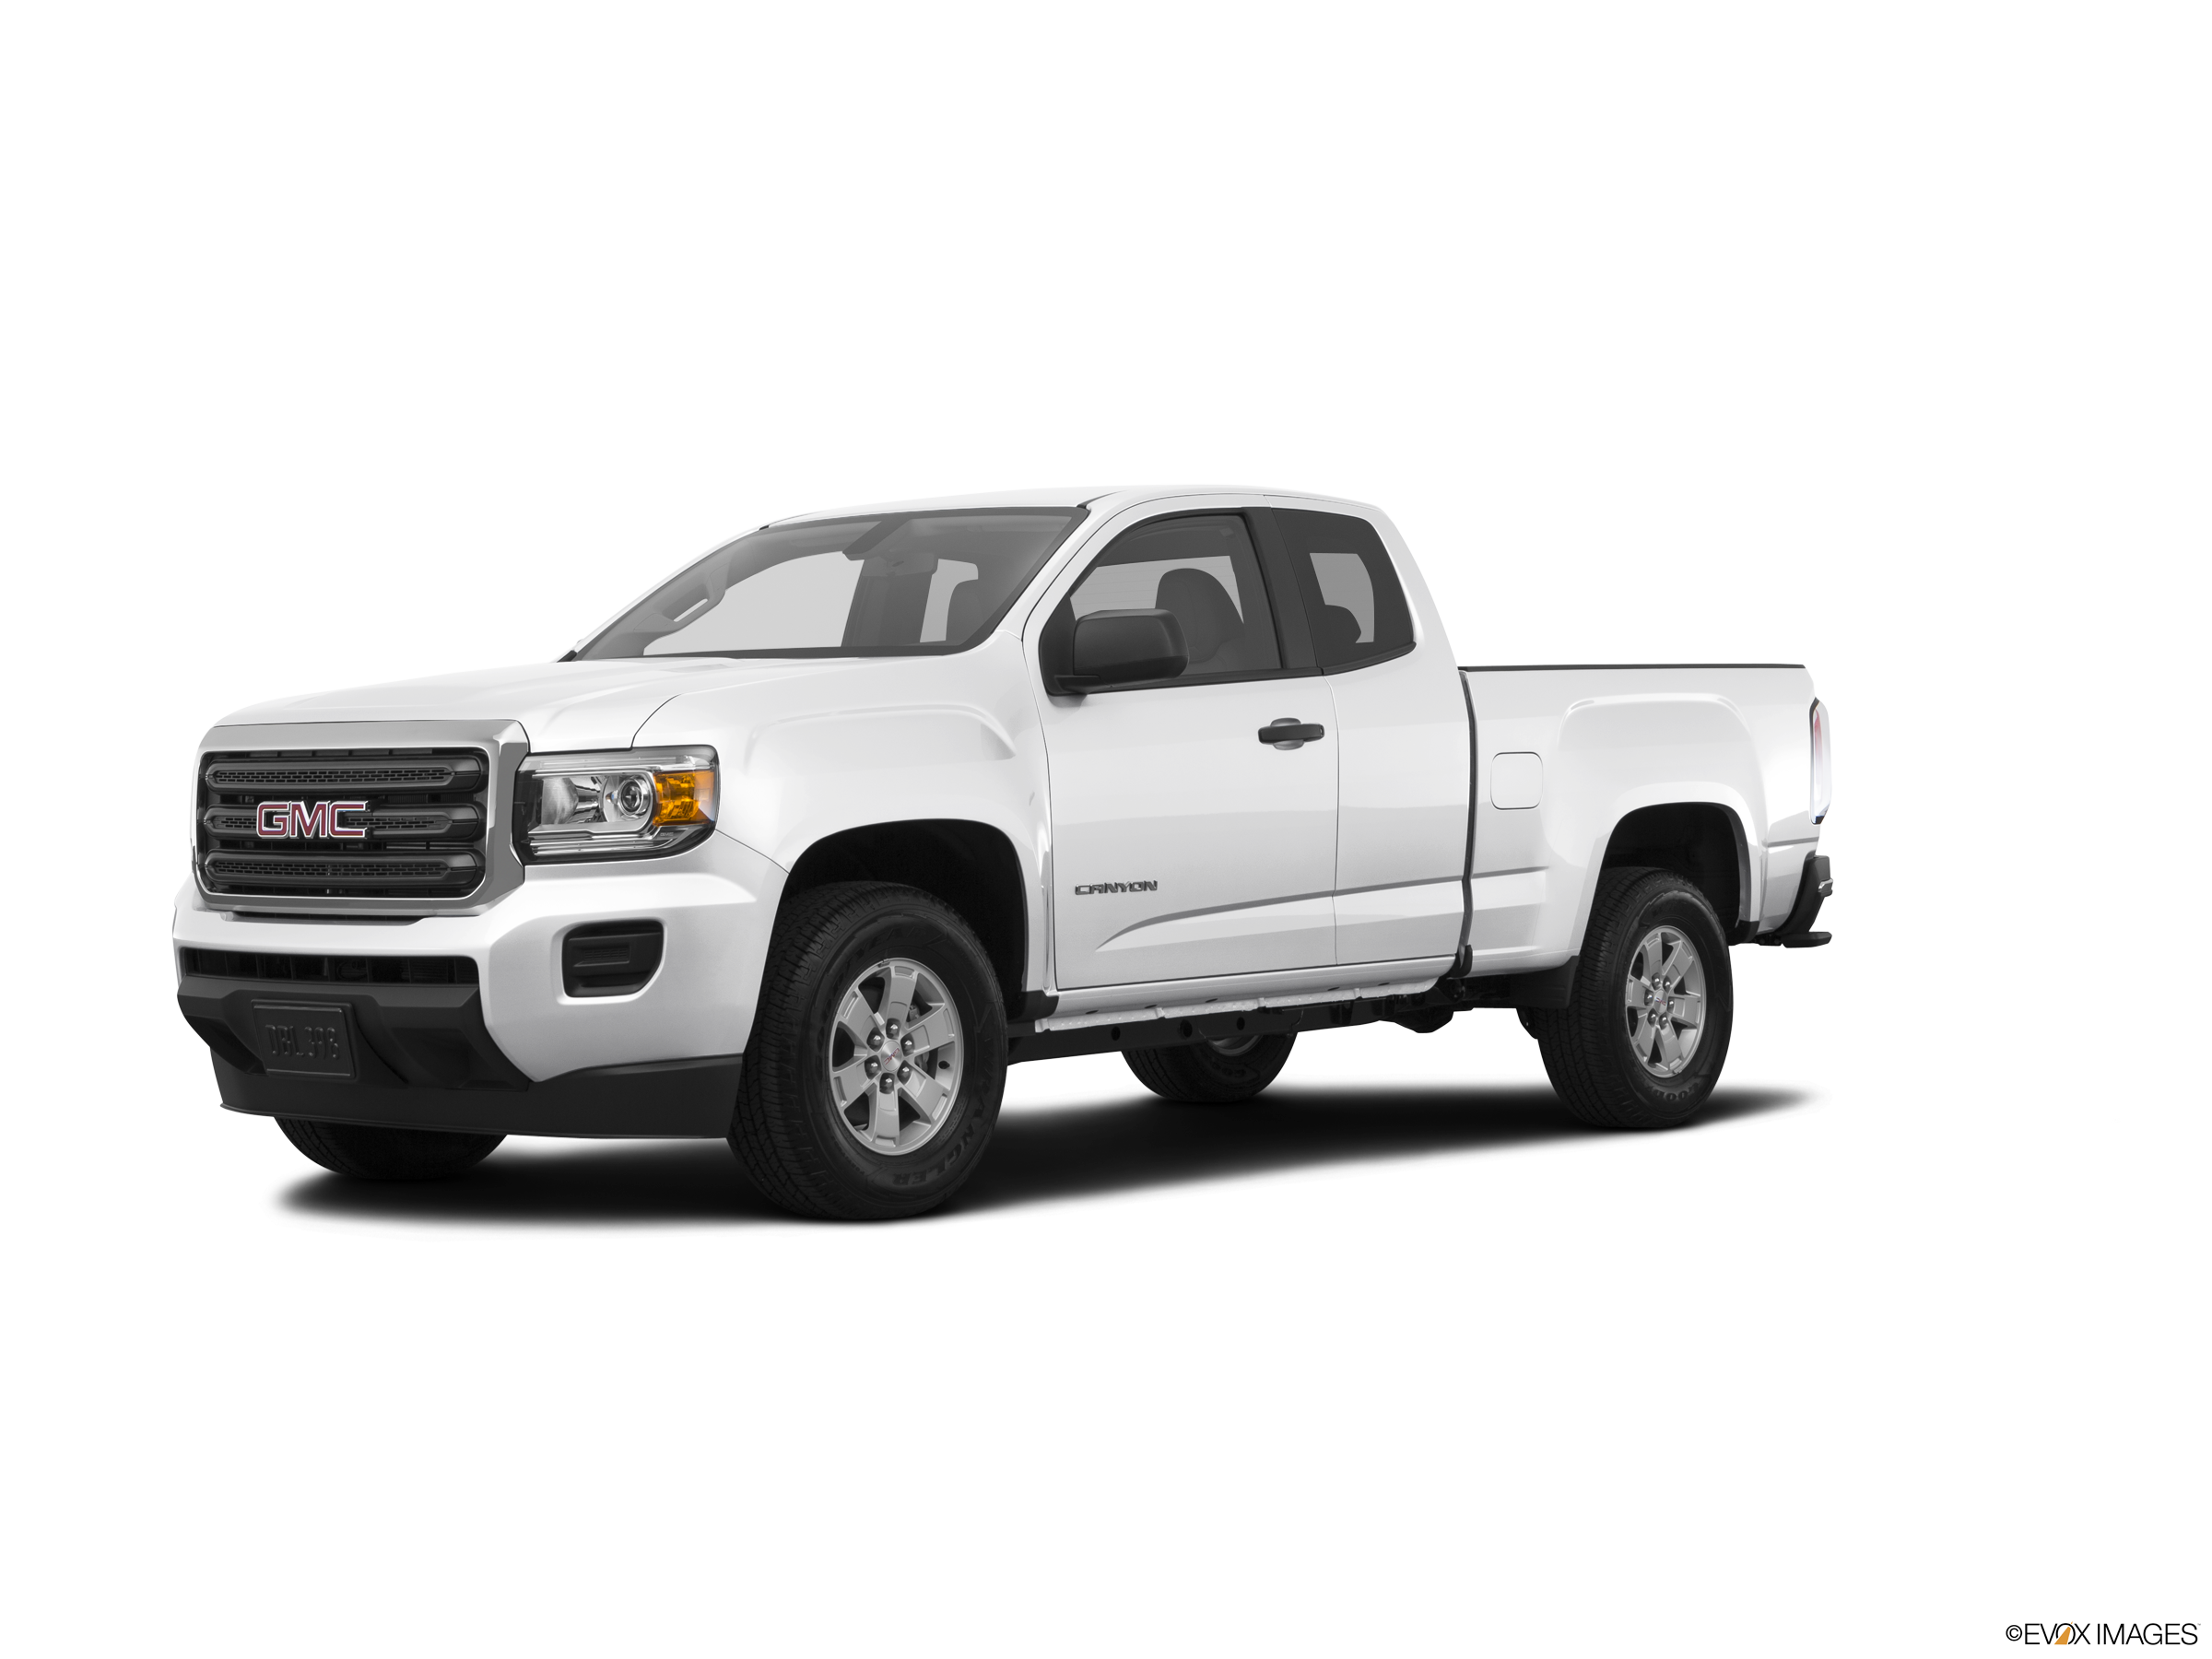 2016 GMC CANYON SPECIAL LUXURY EDITION BASE EXTENDED OWNERS MANUAL USER 16